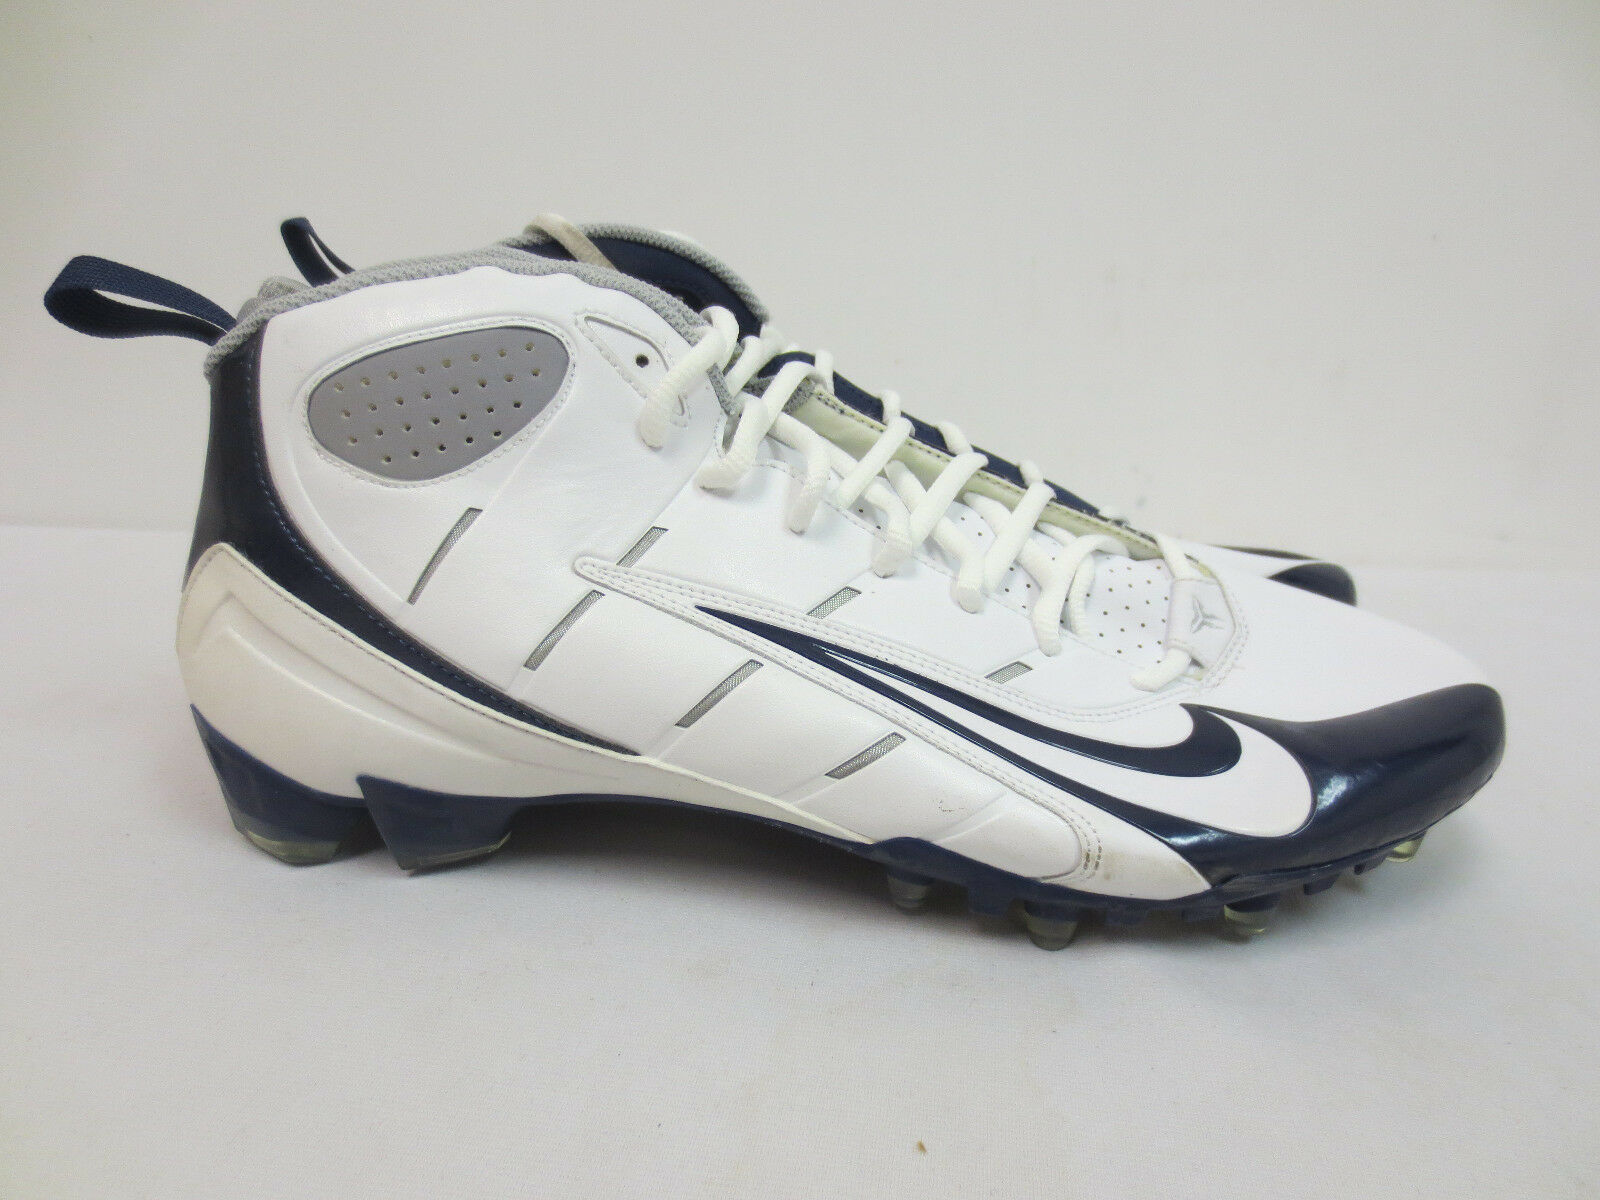 29c77f7f9 NIKE 14 CLEATS SUPER SPEED TD GAME ISSUED MENS 318730 141 NAVY WHT SIZE  FOOTBALL nrlzrd5963-Men